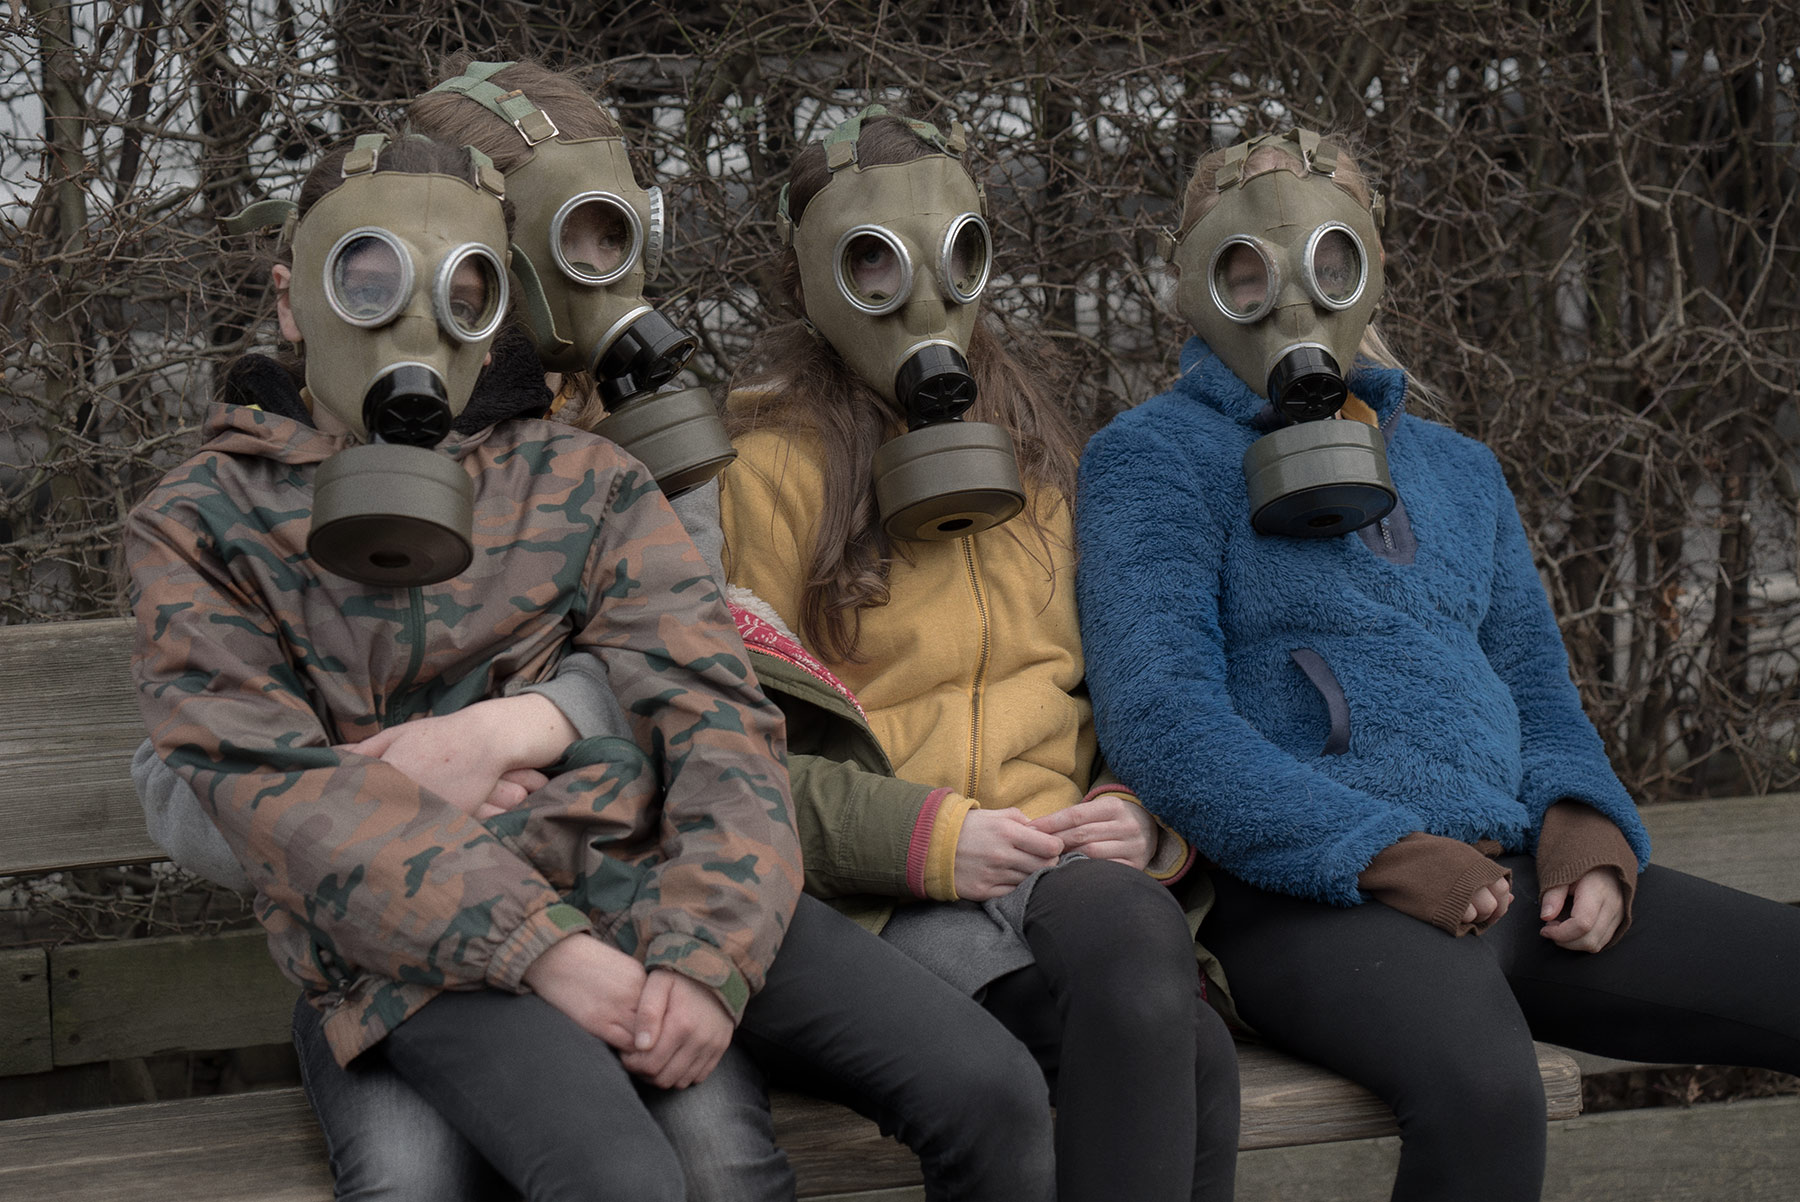 Good Boy Wolf Photographer, filmic portrait, children wearing gas masks outside